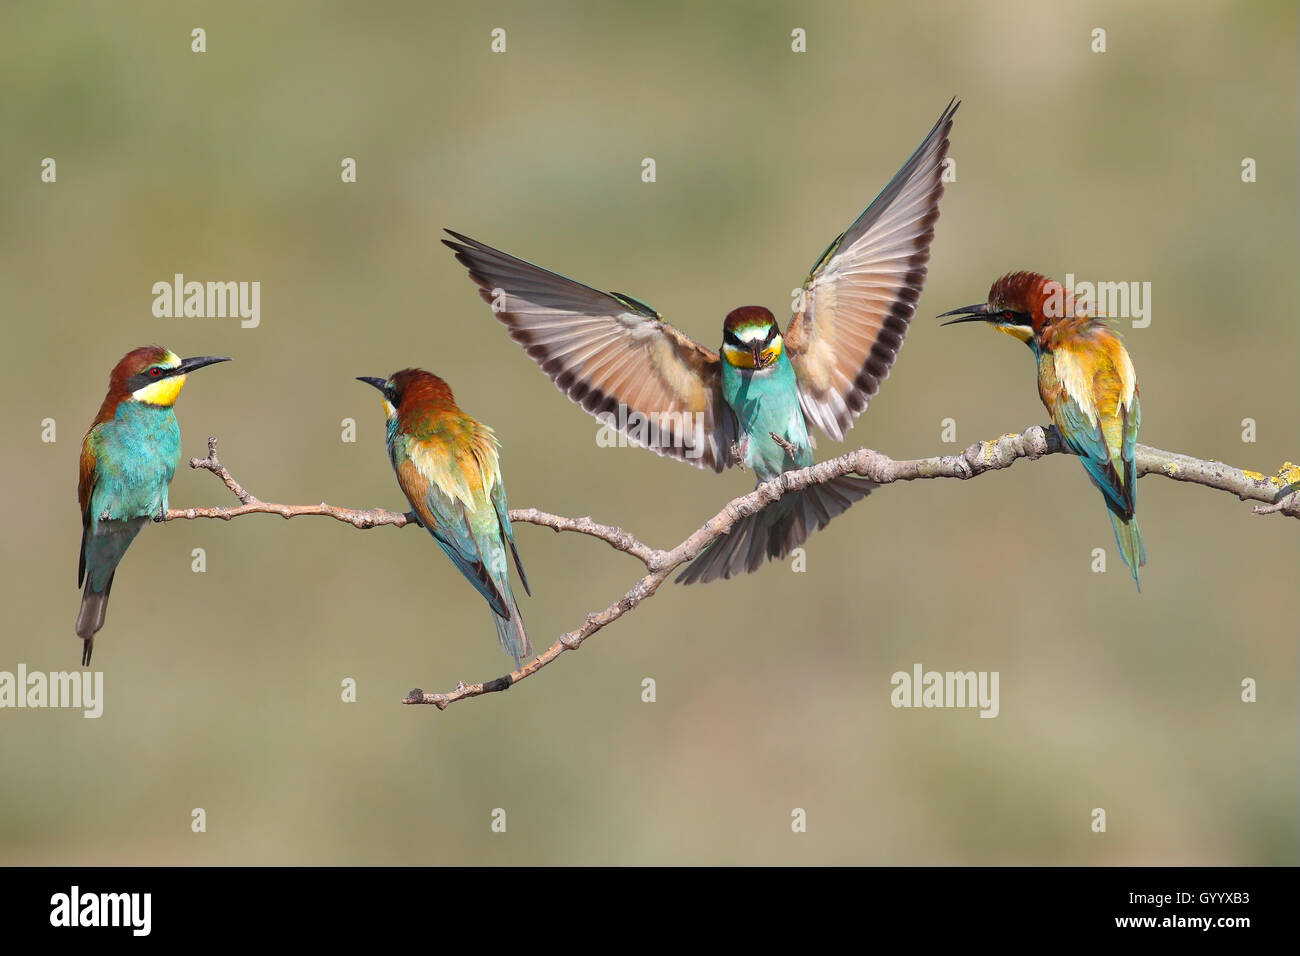 Guêpiers d'Europe (Merops apiaster), quatre oiseaux, l'un en vol, Nickelsdorf, Parc national du lac Photo Stock